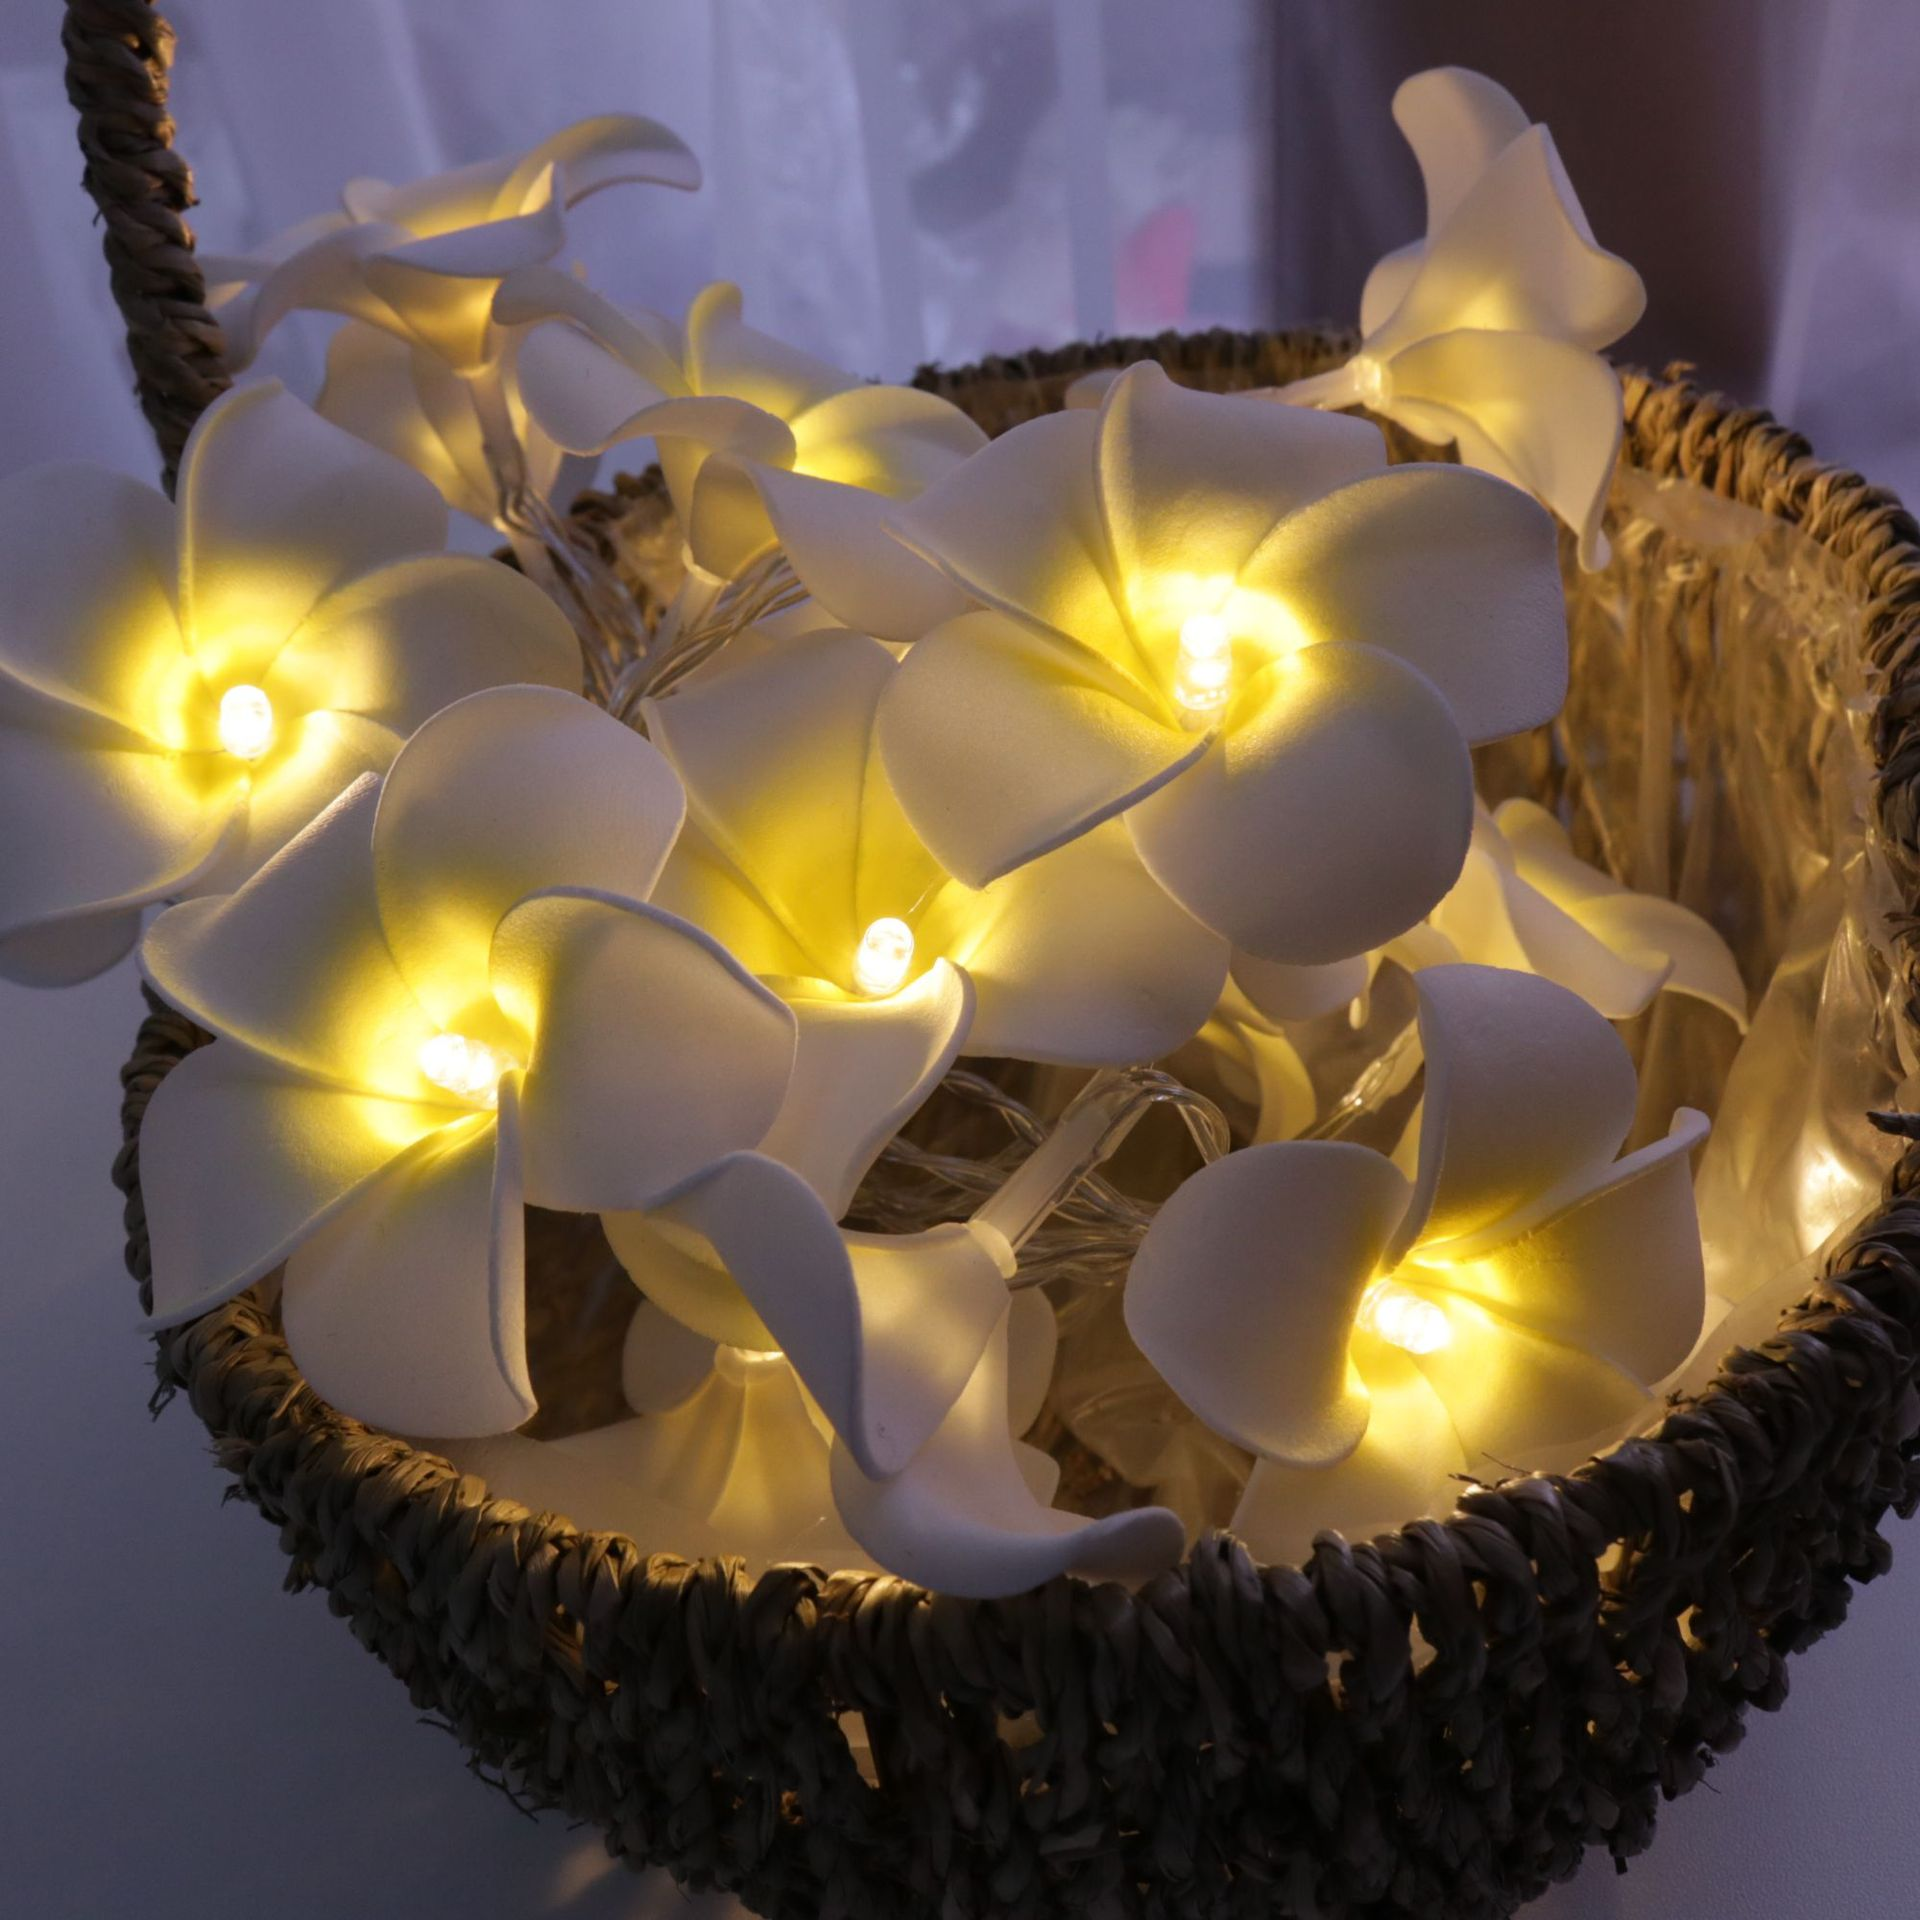 New Years Fairy Light String Light Plumeria Flower Valentine's Day Wedding Holiday Party LED Light Bedroom Garland Decoration